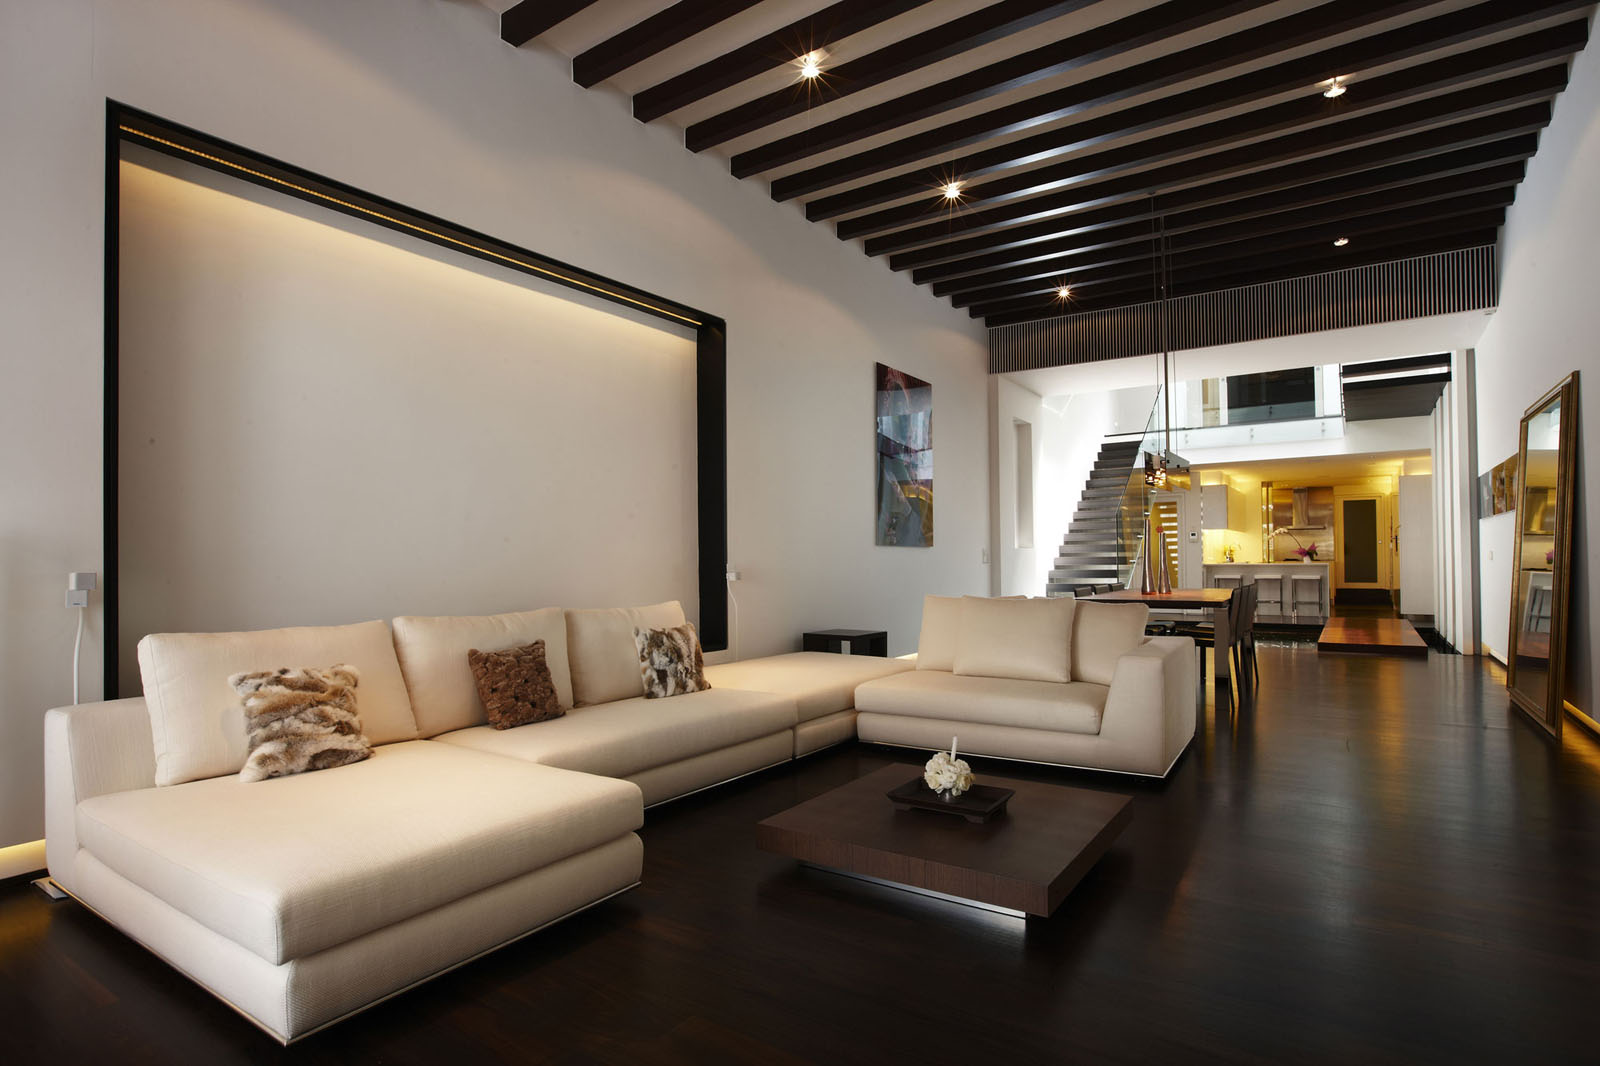 Exceptionnel Luxury Modern Home Singapore_1. Singapore Contemporary Home Interiors